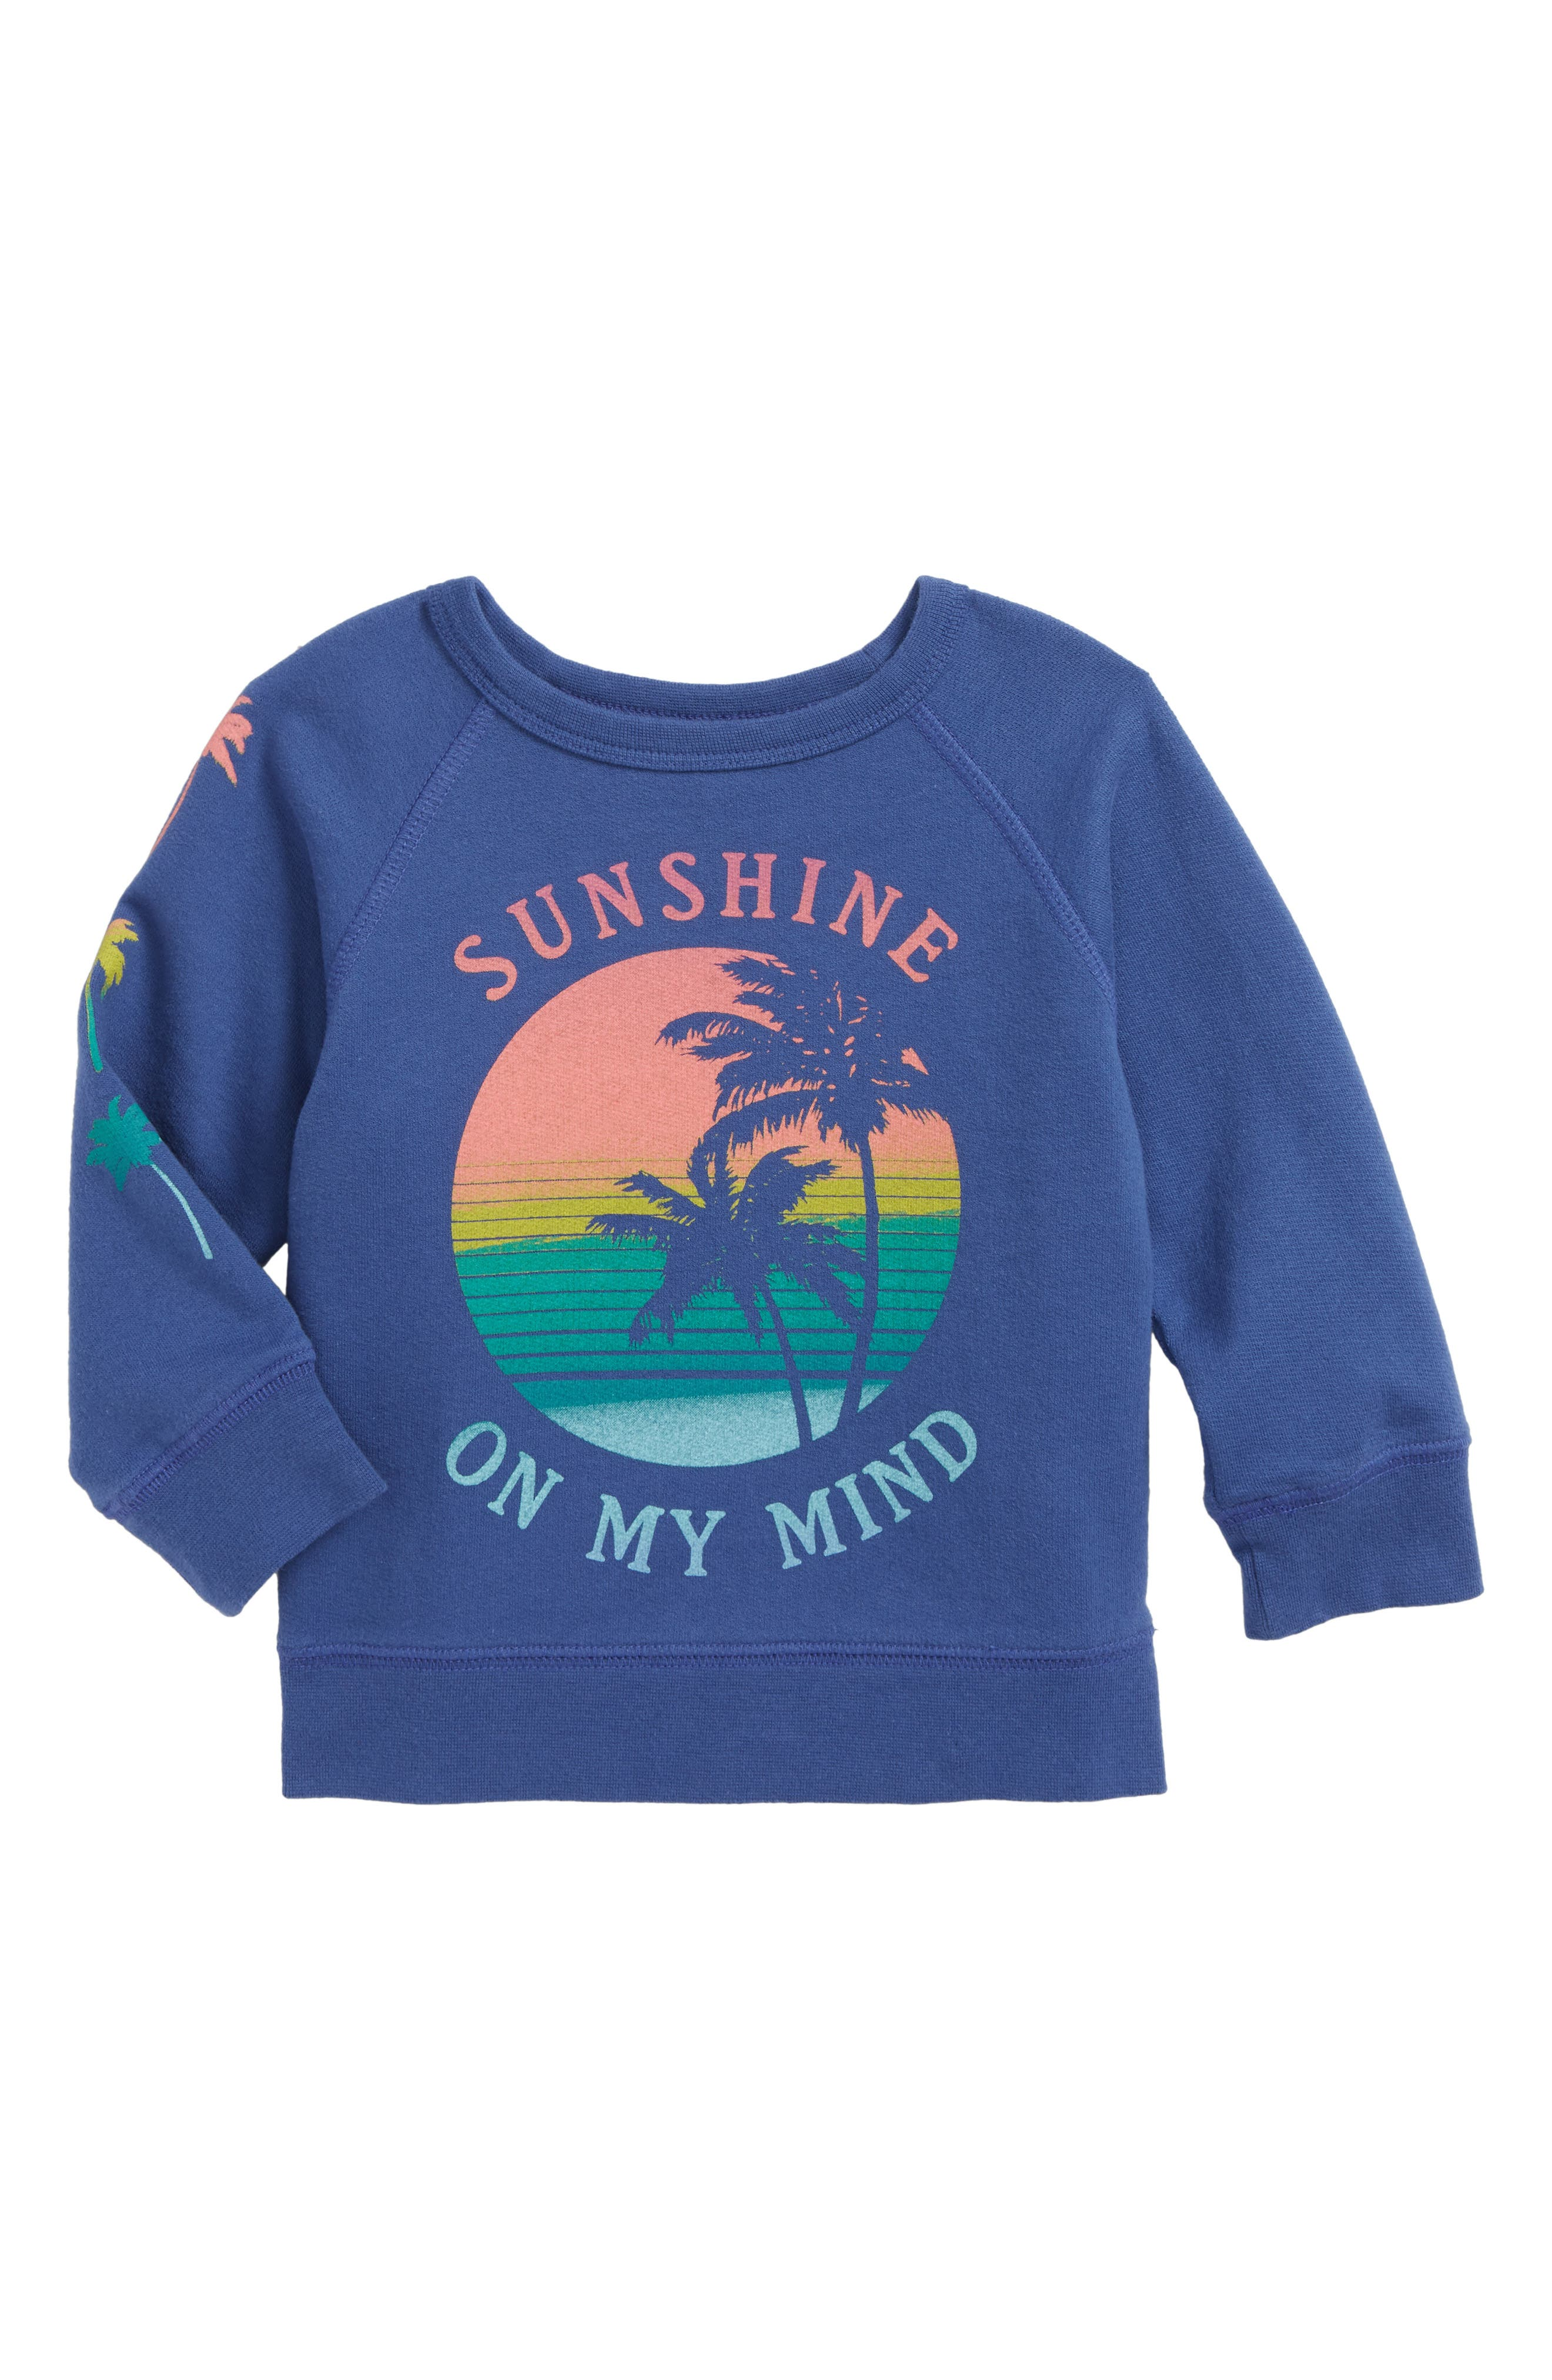 Sunshine On My Mind Graphic Tee,                             Main thumbnail 1, color,                             Navy